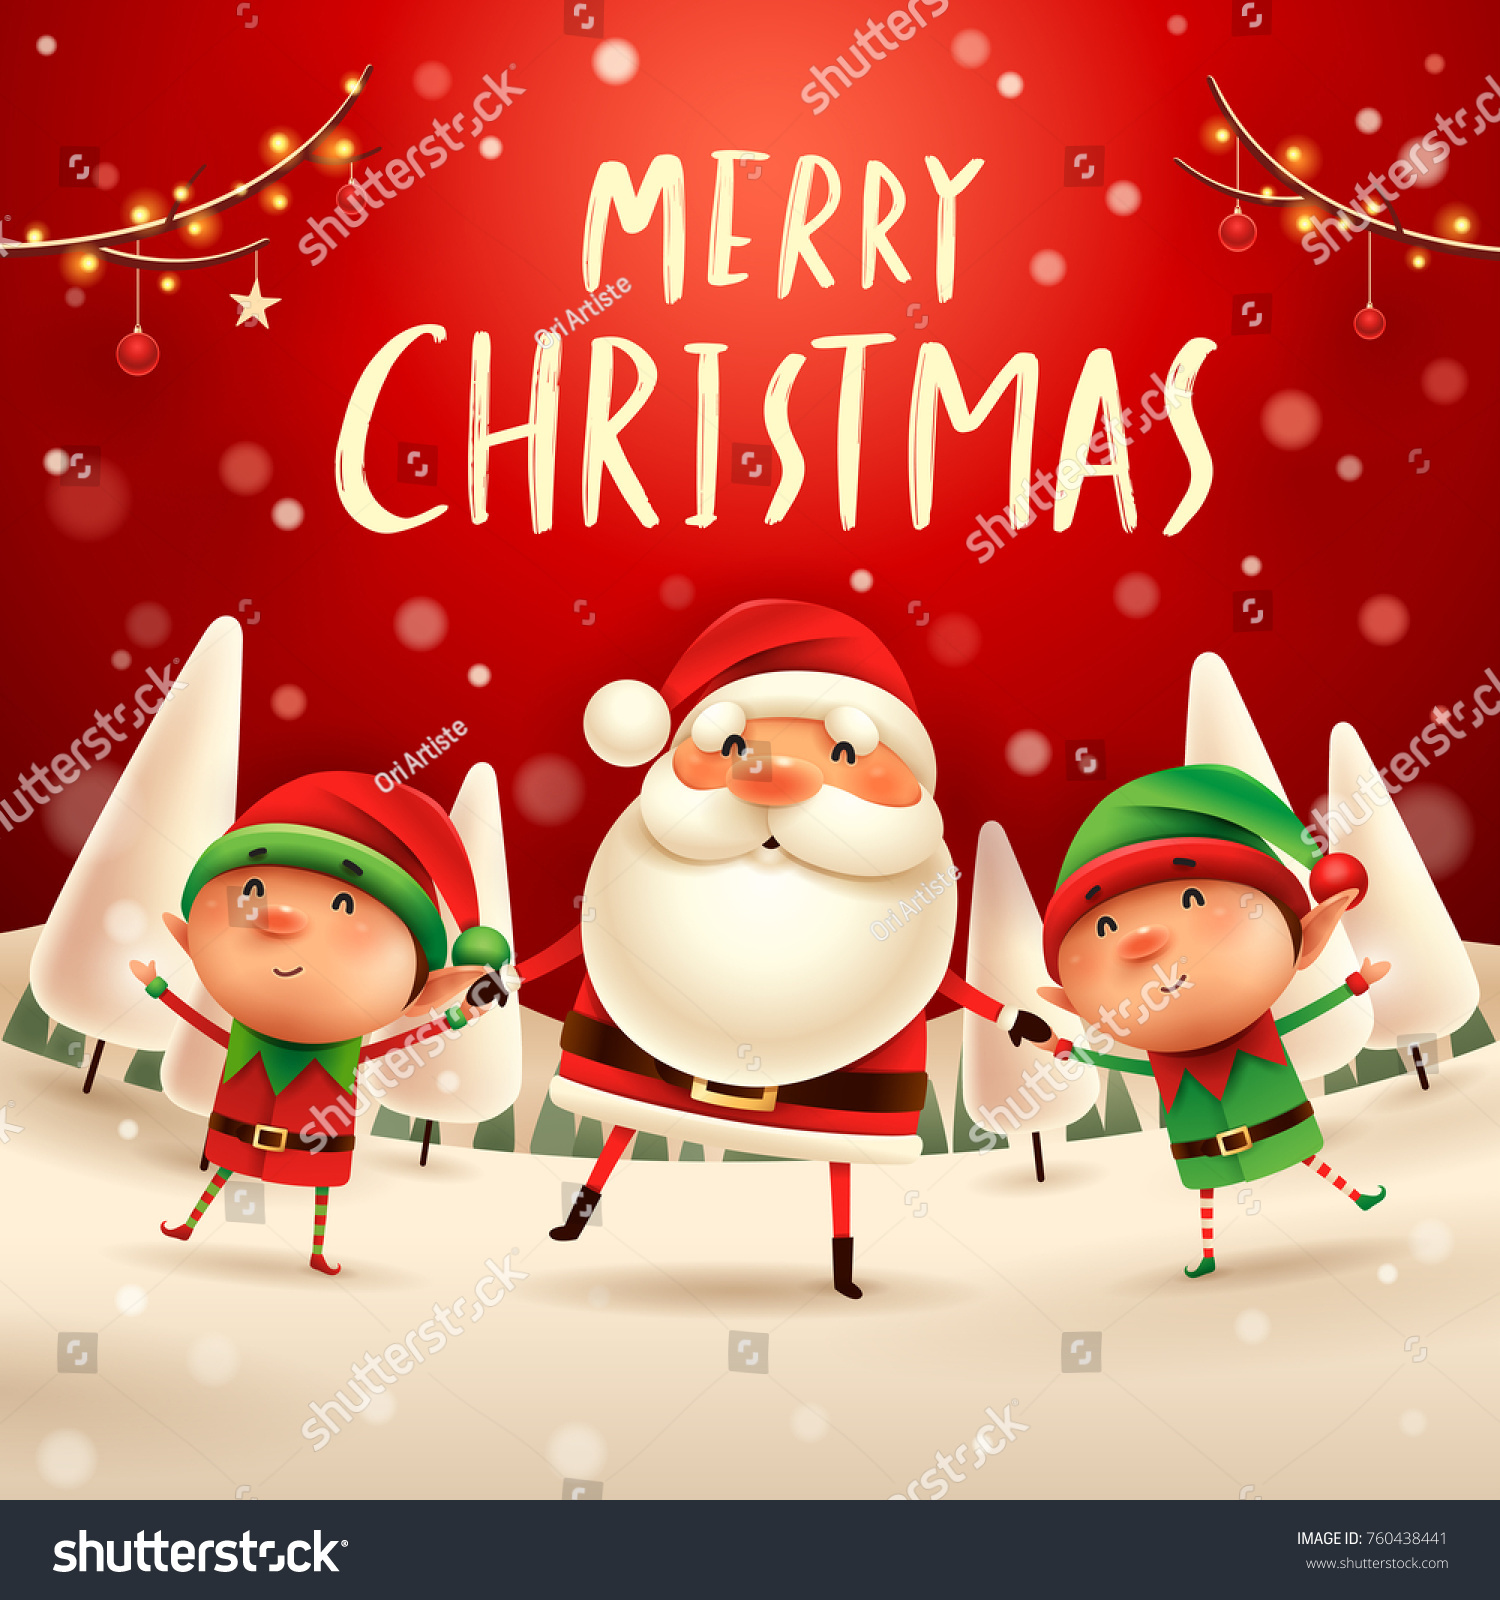 merry christmas santa claus and elves holding hands in christmas snow scene winter landscape - Merry Christmas Elf